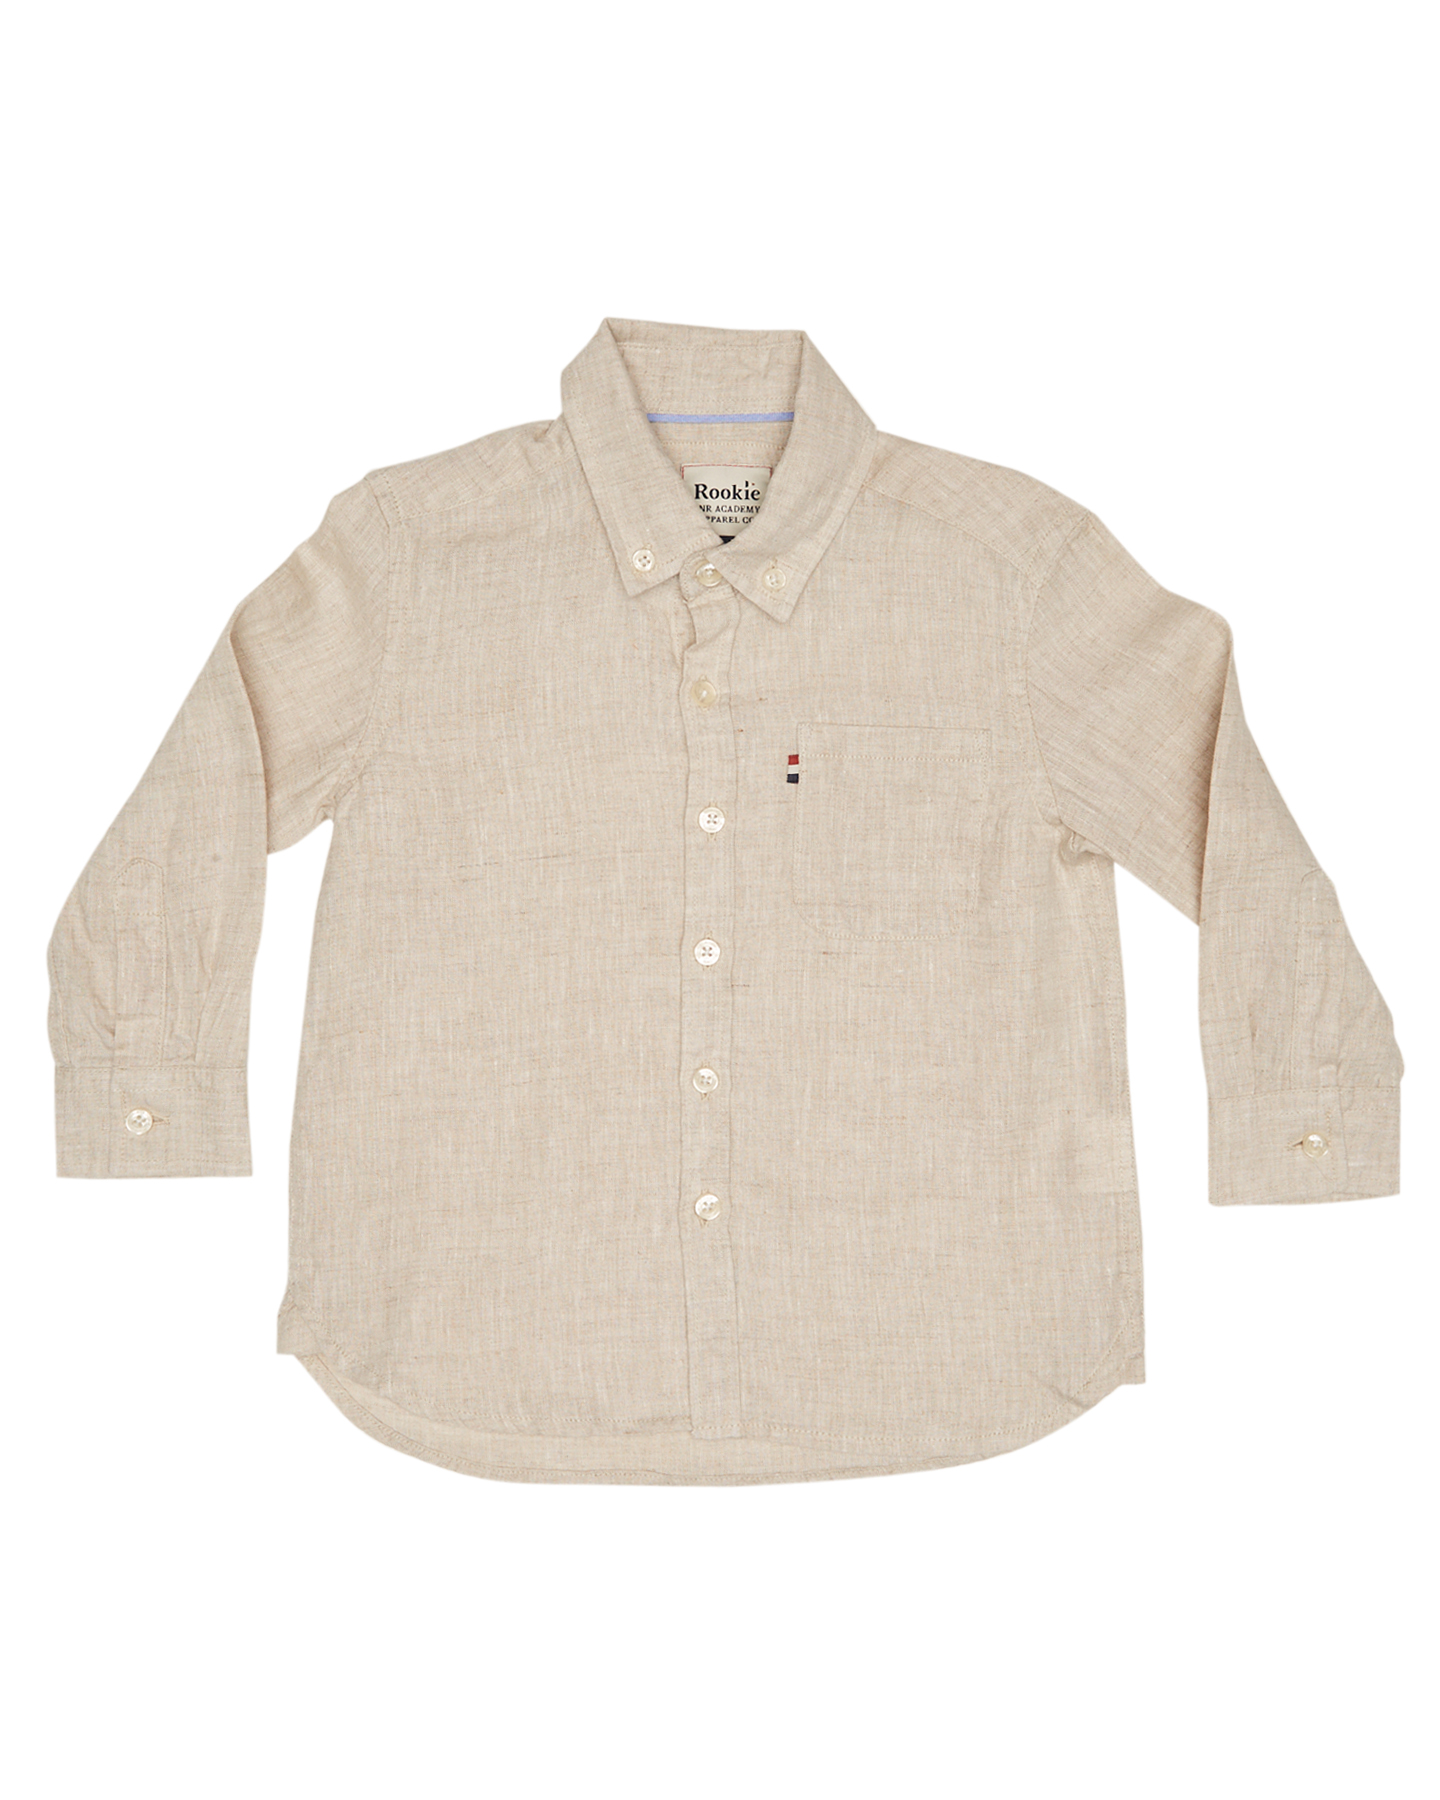 5141e73959 Details about New Rookie By The Academy Brand Boys Boys Hampton Linen Shirt  - Kids Natural